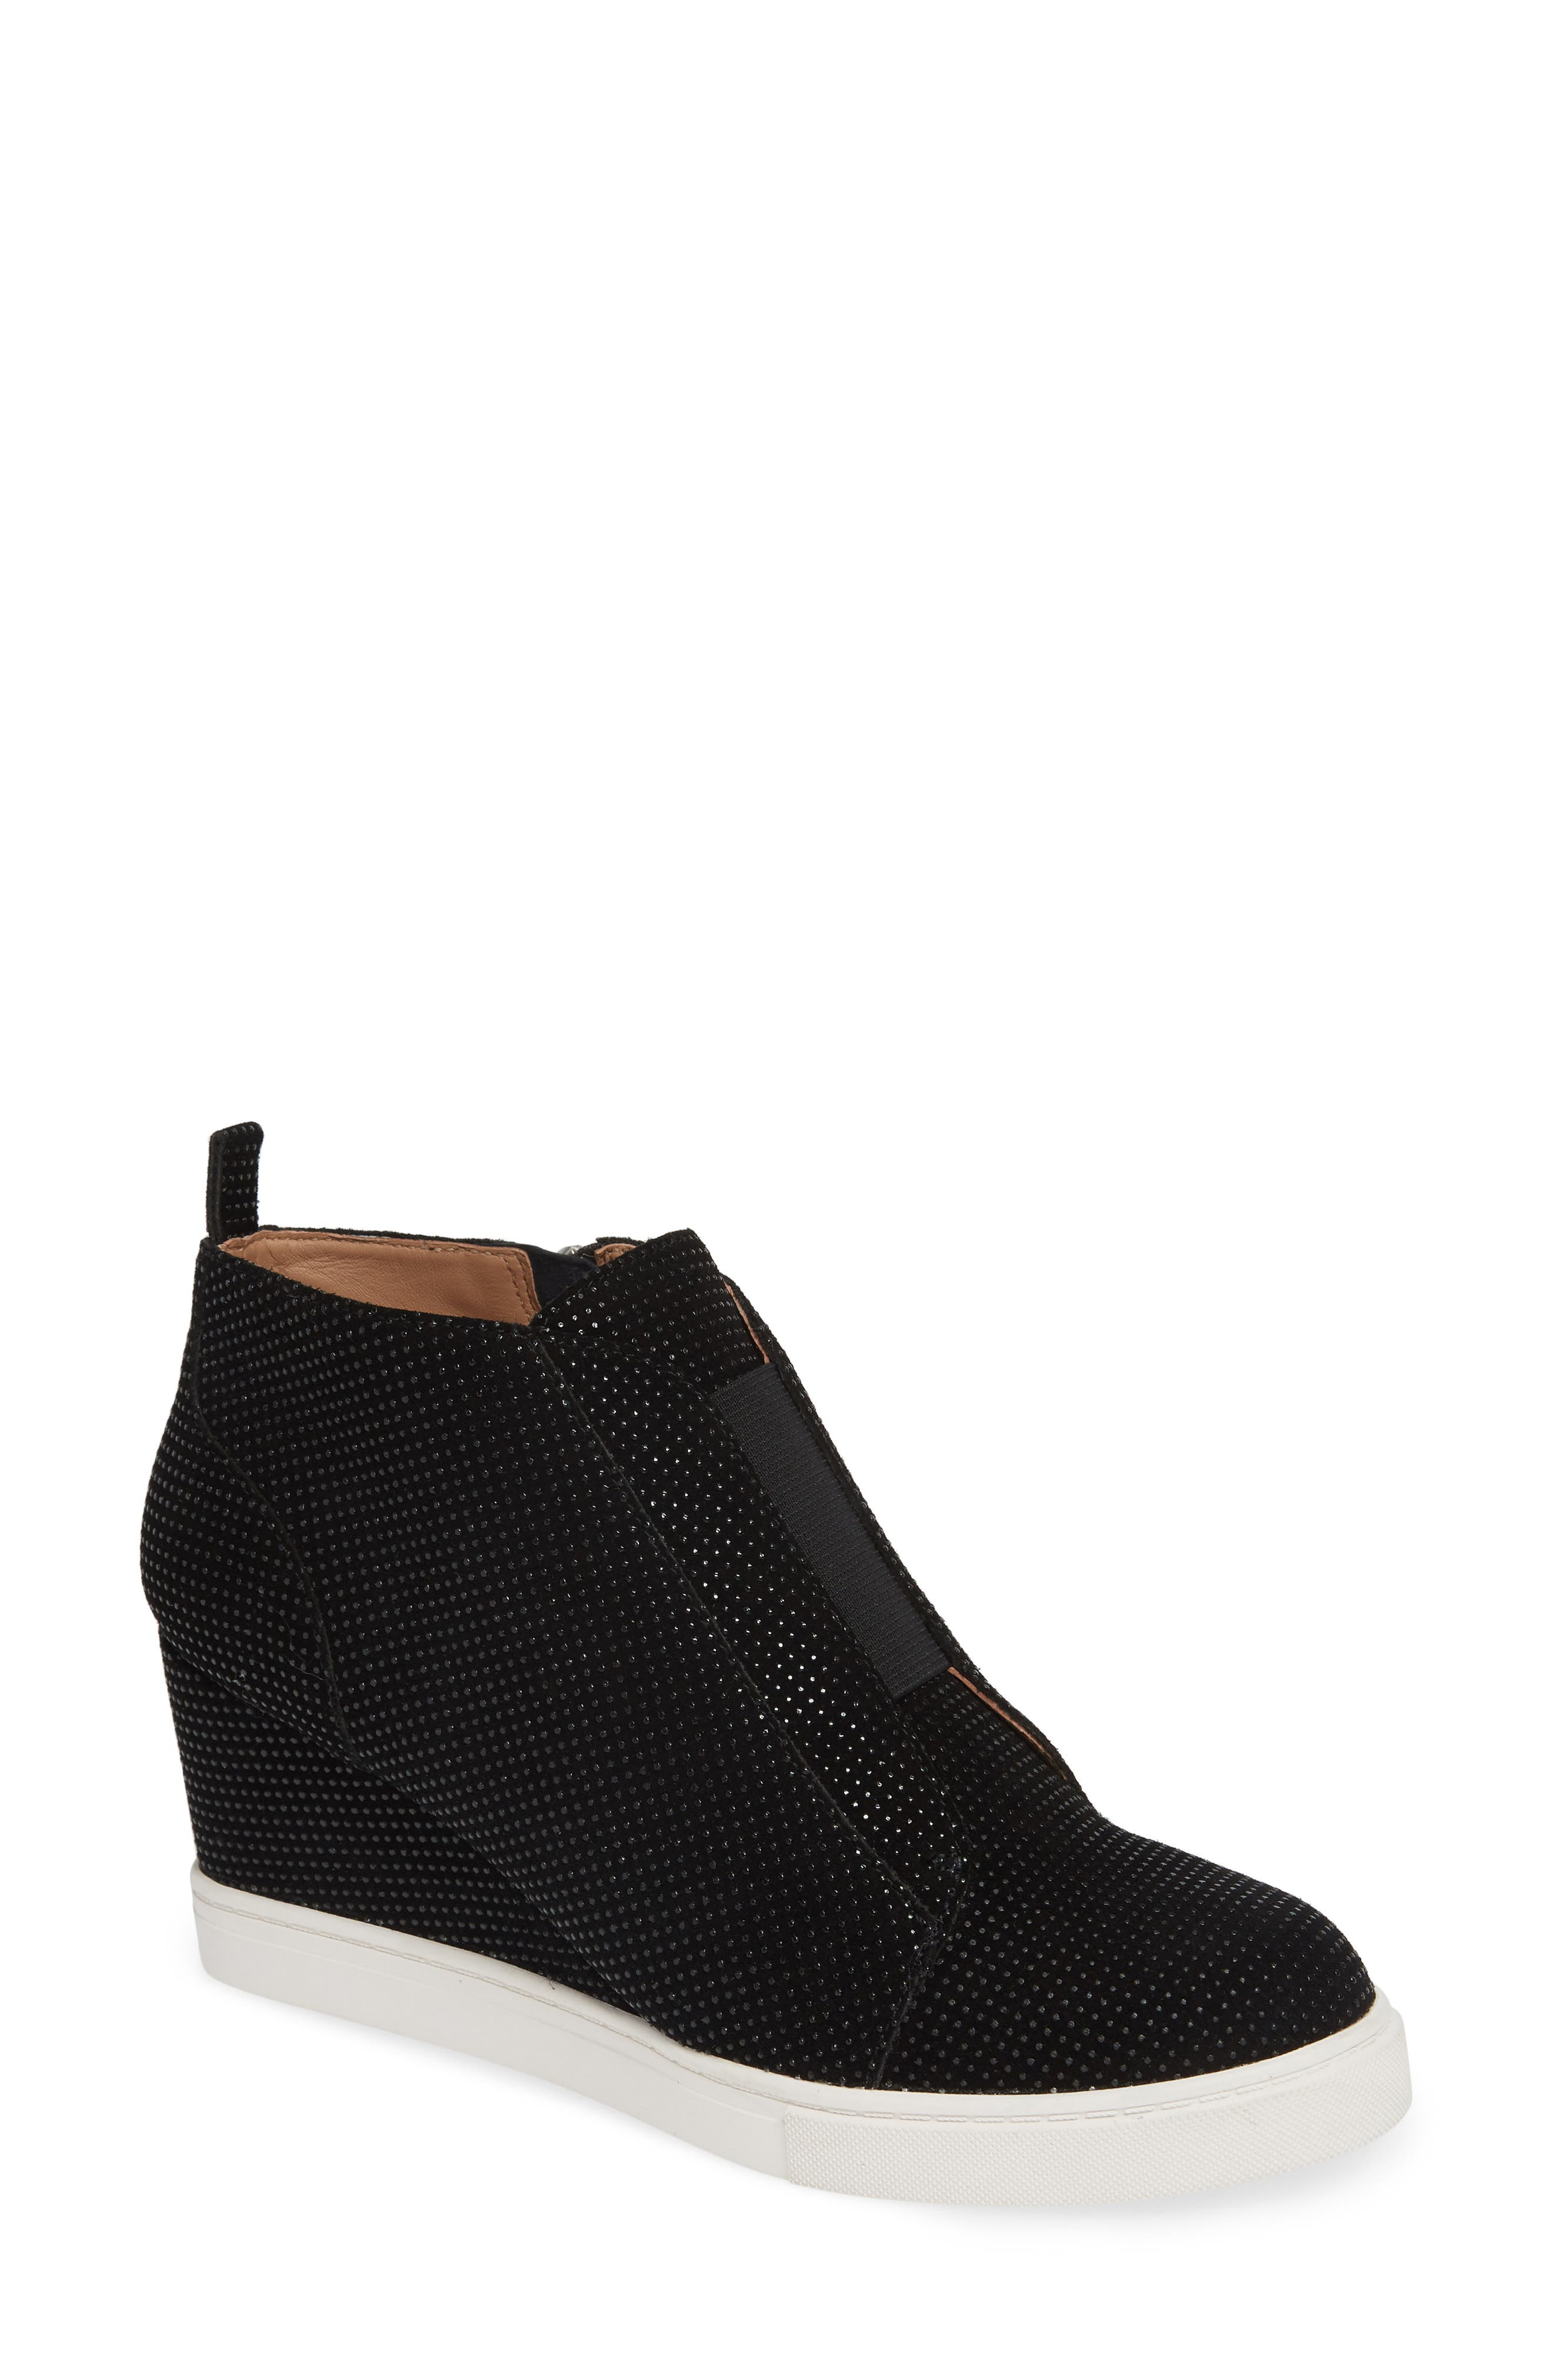 'Felicia' Wedge Bootie,                             Main thumbnail 1, color,                             BLACK TEXTURED SUEDE